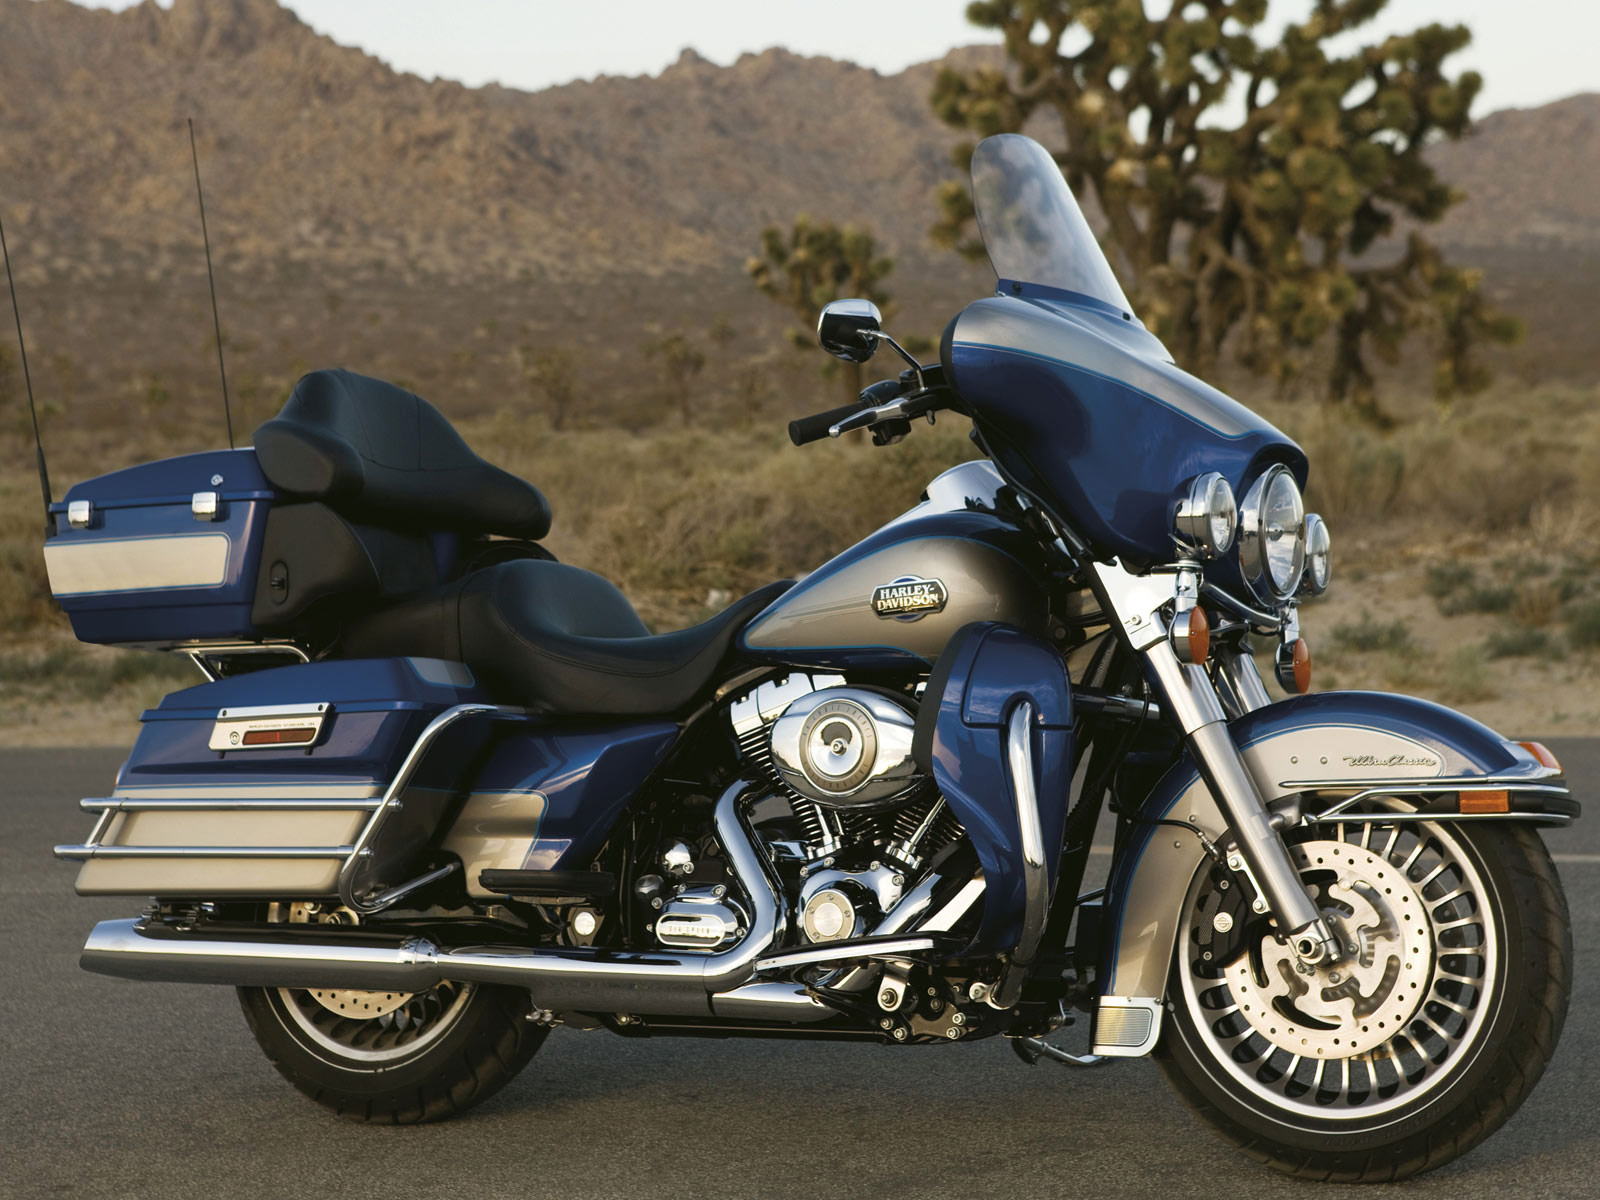 2009 Harley-Davidson Ultra Classic Electra Glide